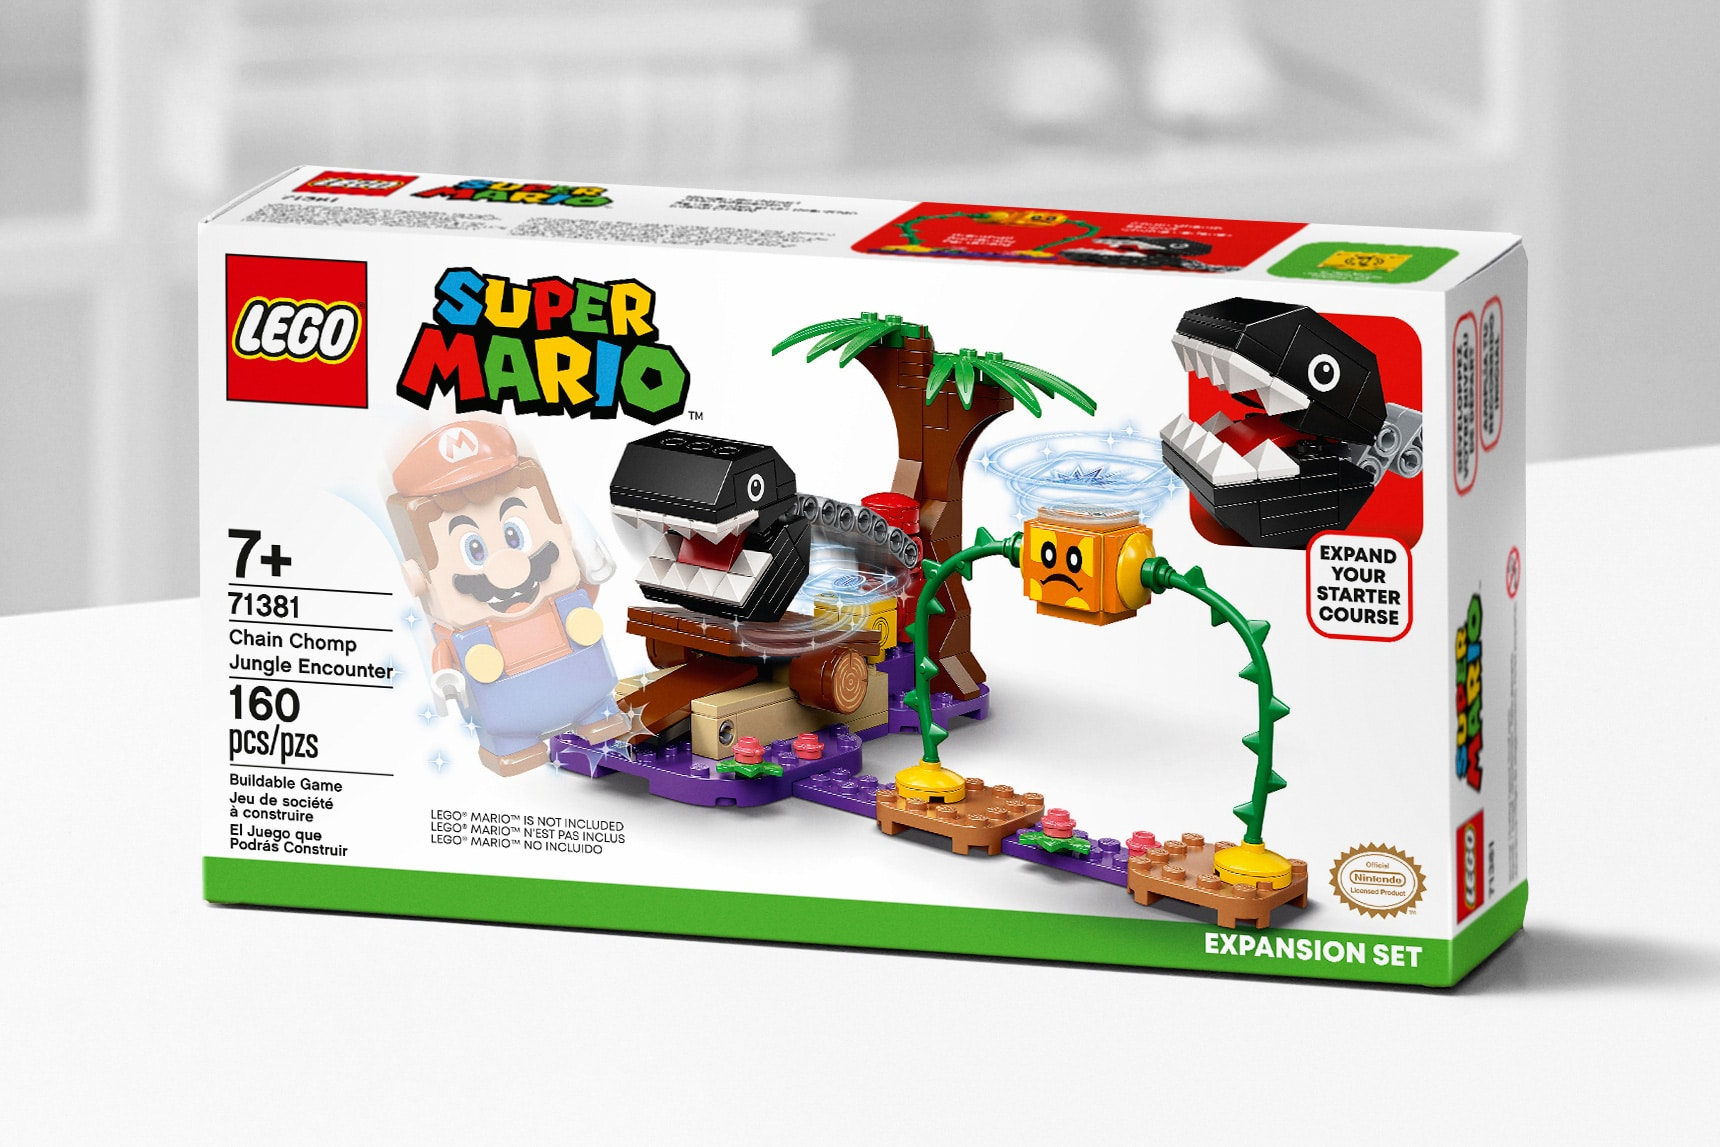 LEGO Super Mario 71381 Chain Chomp Jungle Encounter 1